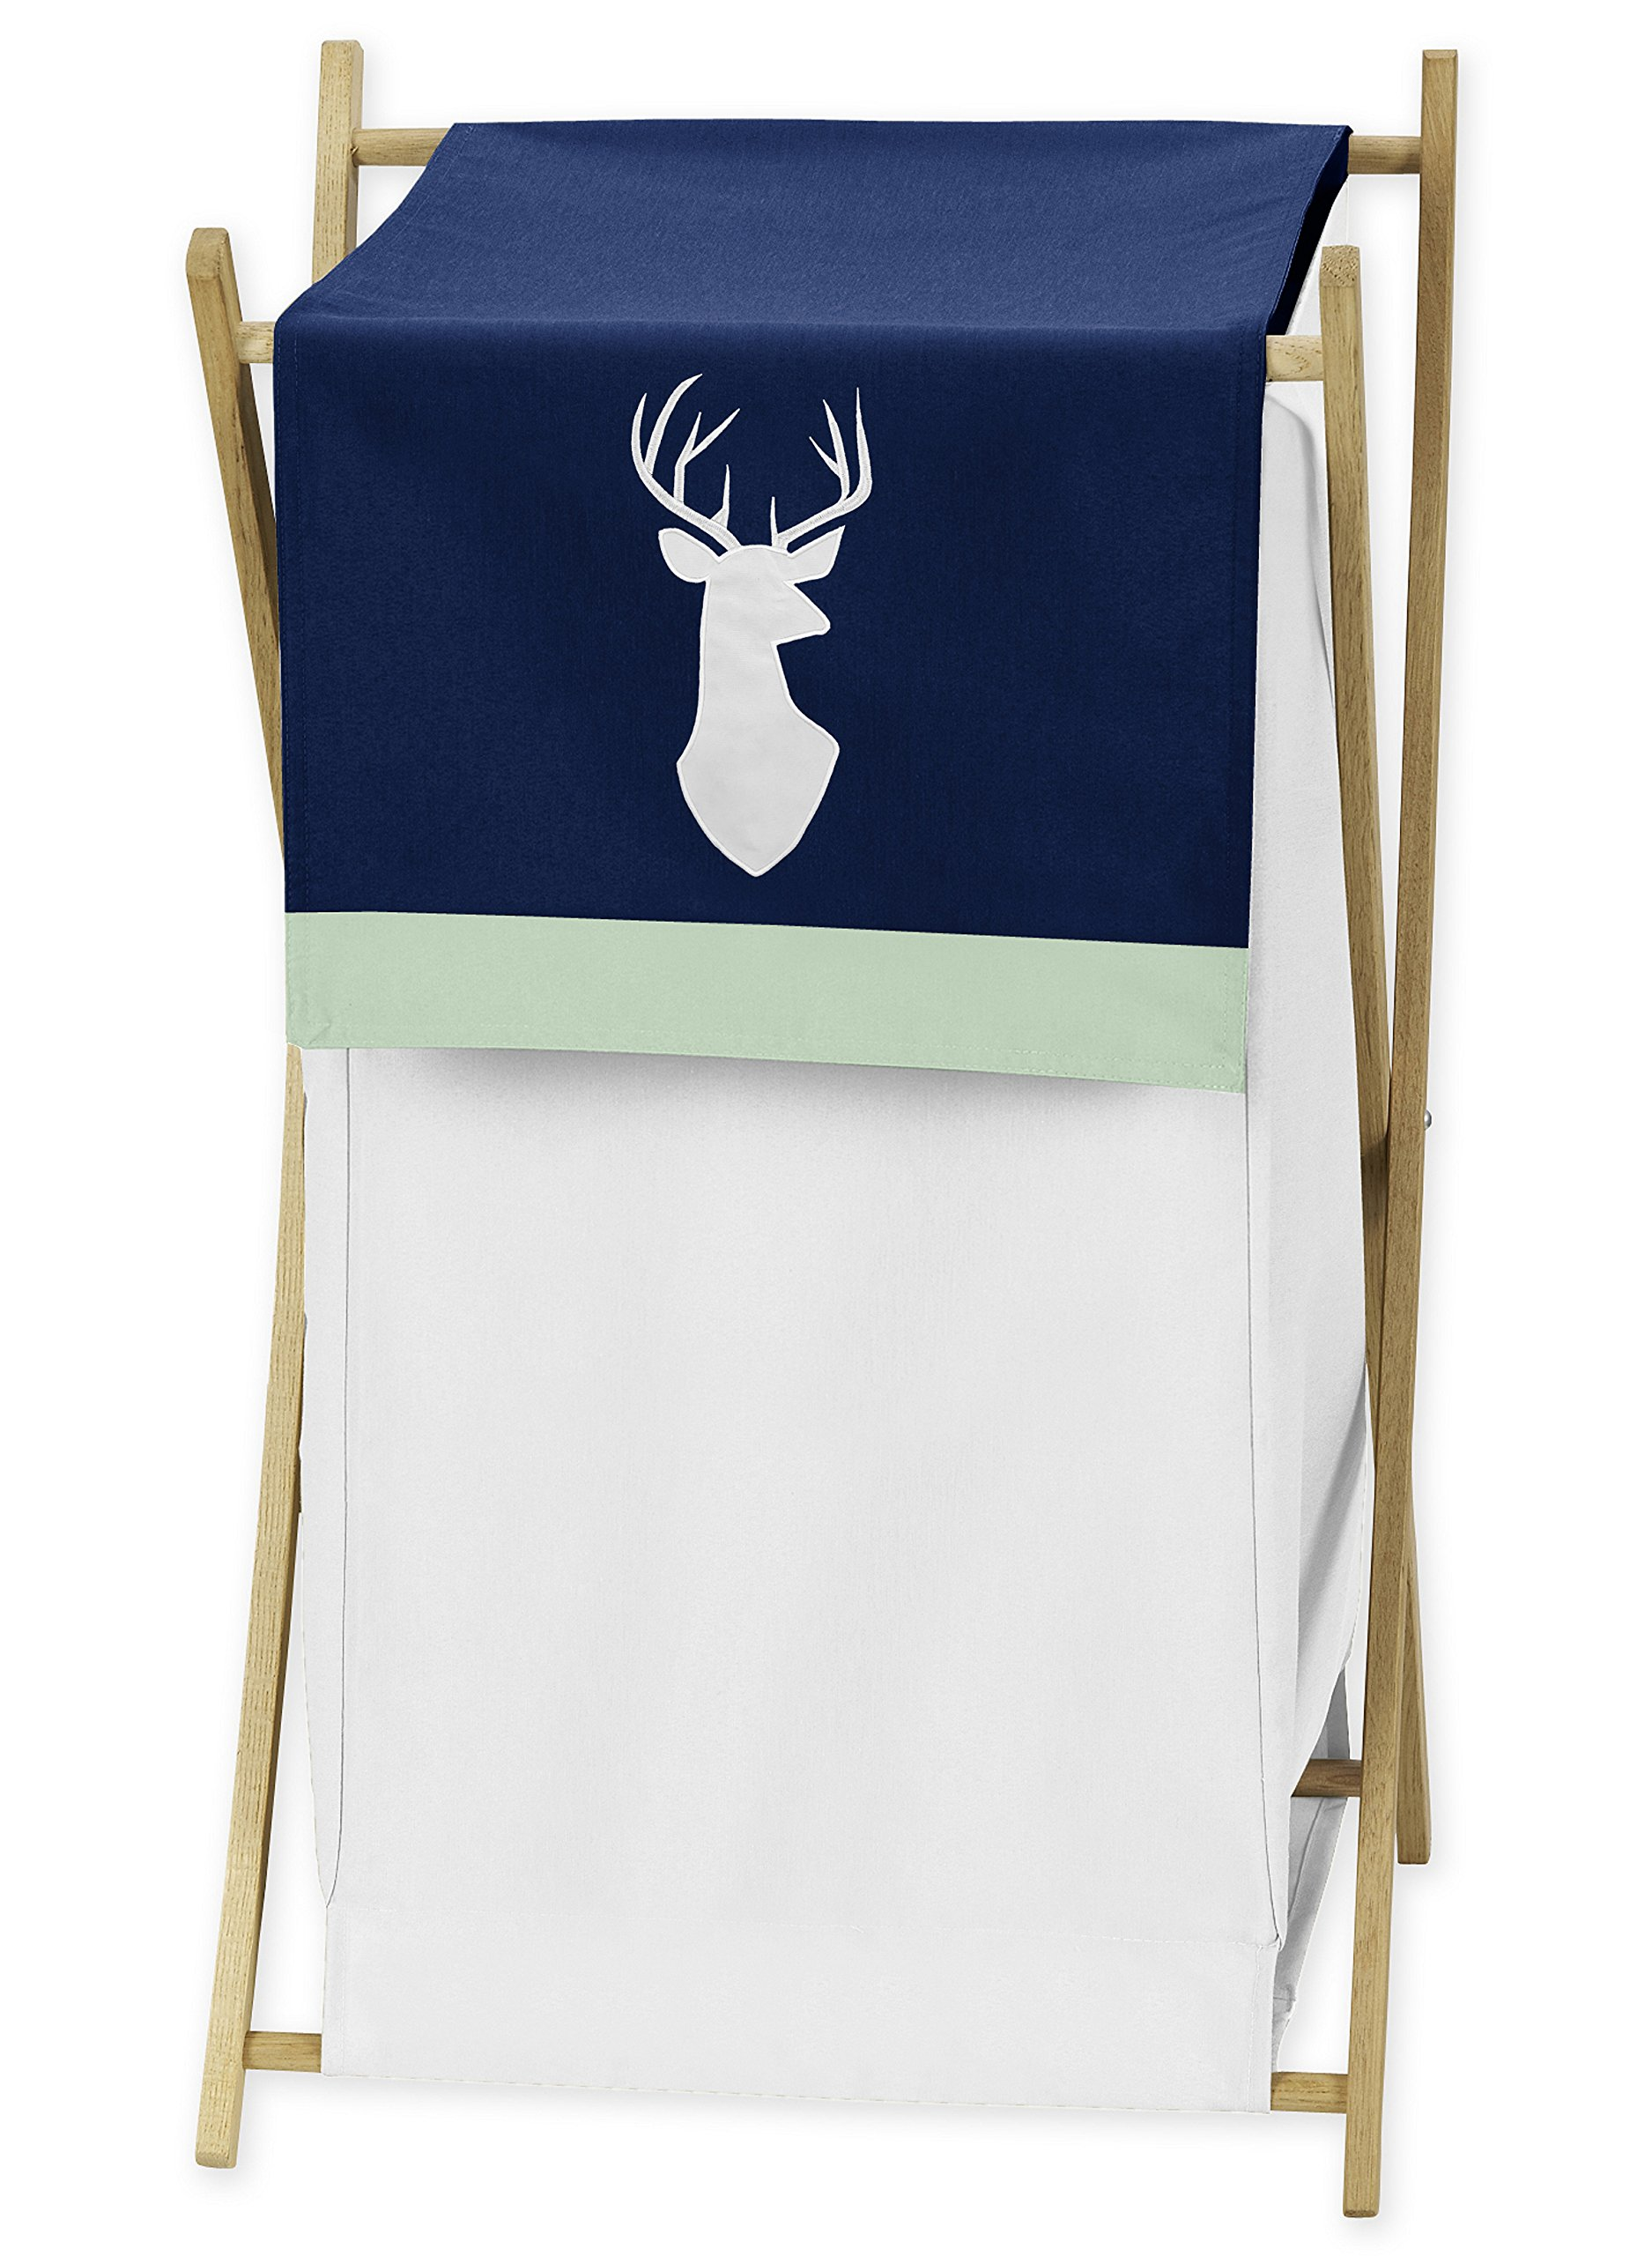 Sweet JoJo Designs Baby/Kids Clothes Laundry Hamper for Navy Blue, Mint and Grey Woodsy Deer Boys Bedding Sets